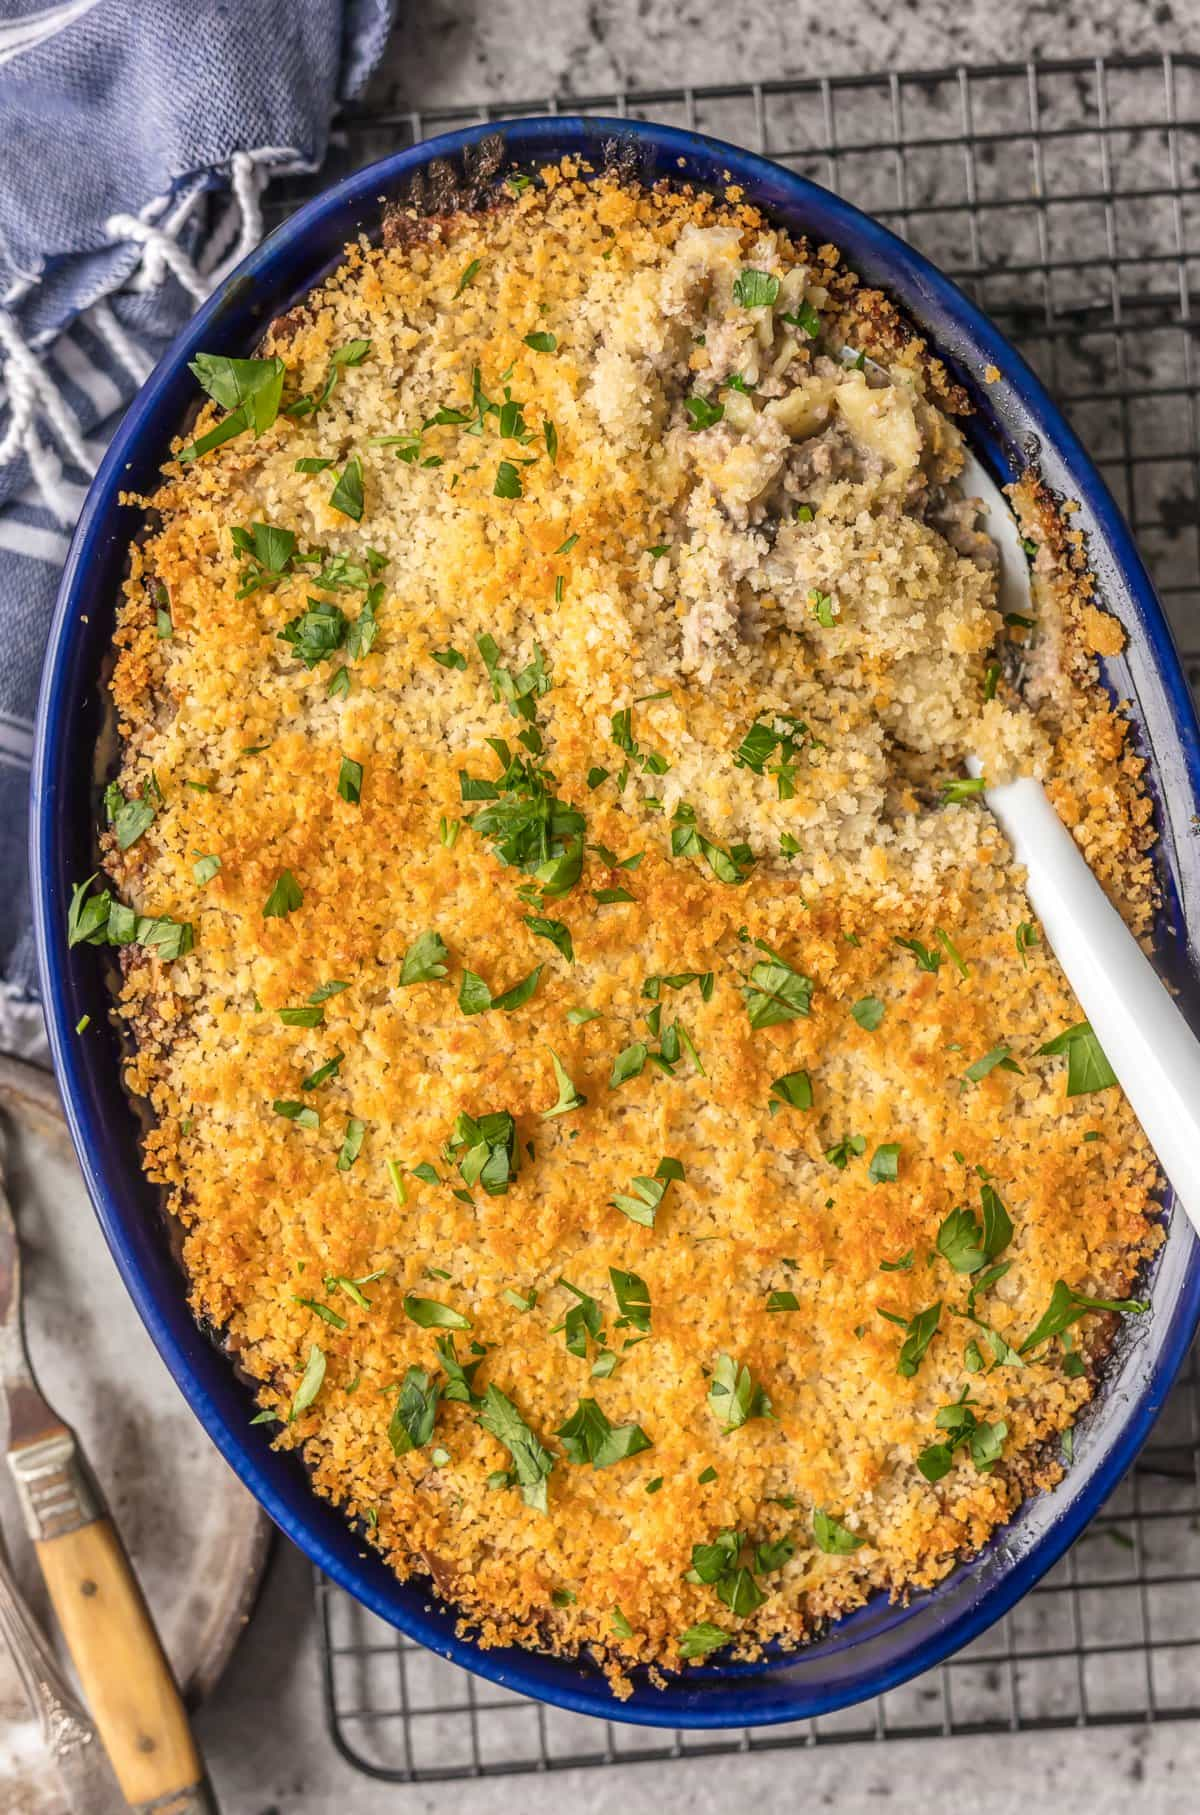 Casserole topped with breadcrumbs